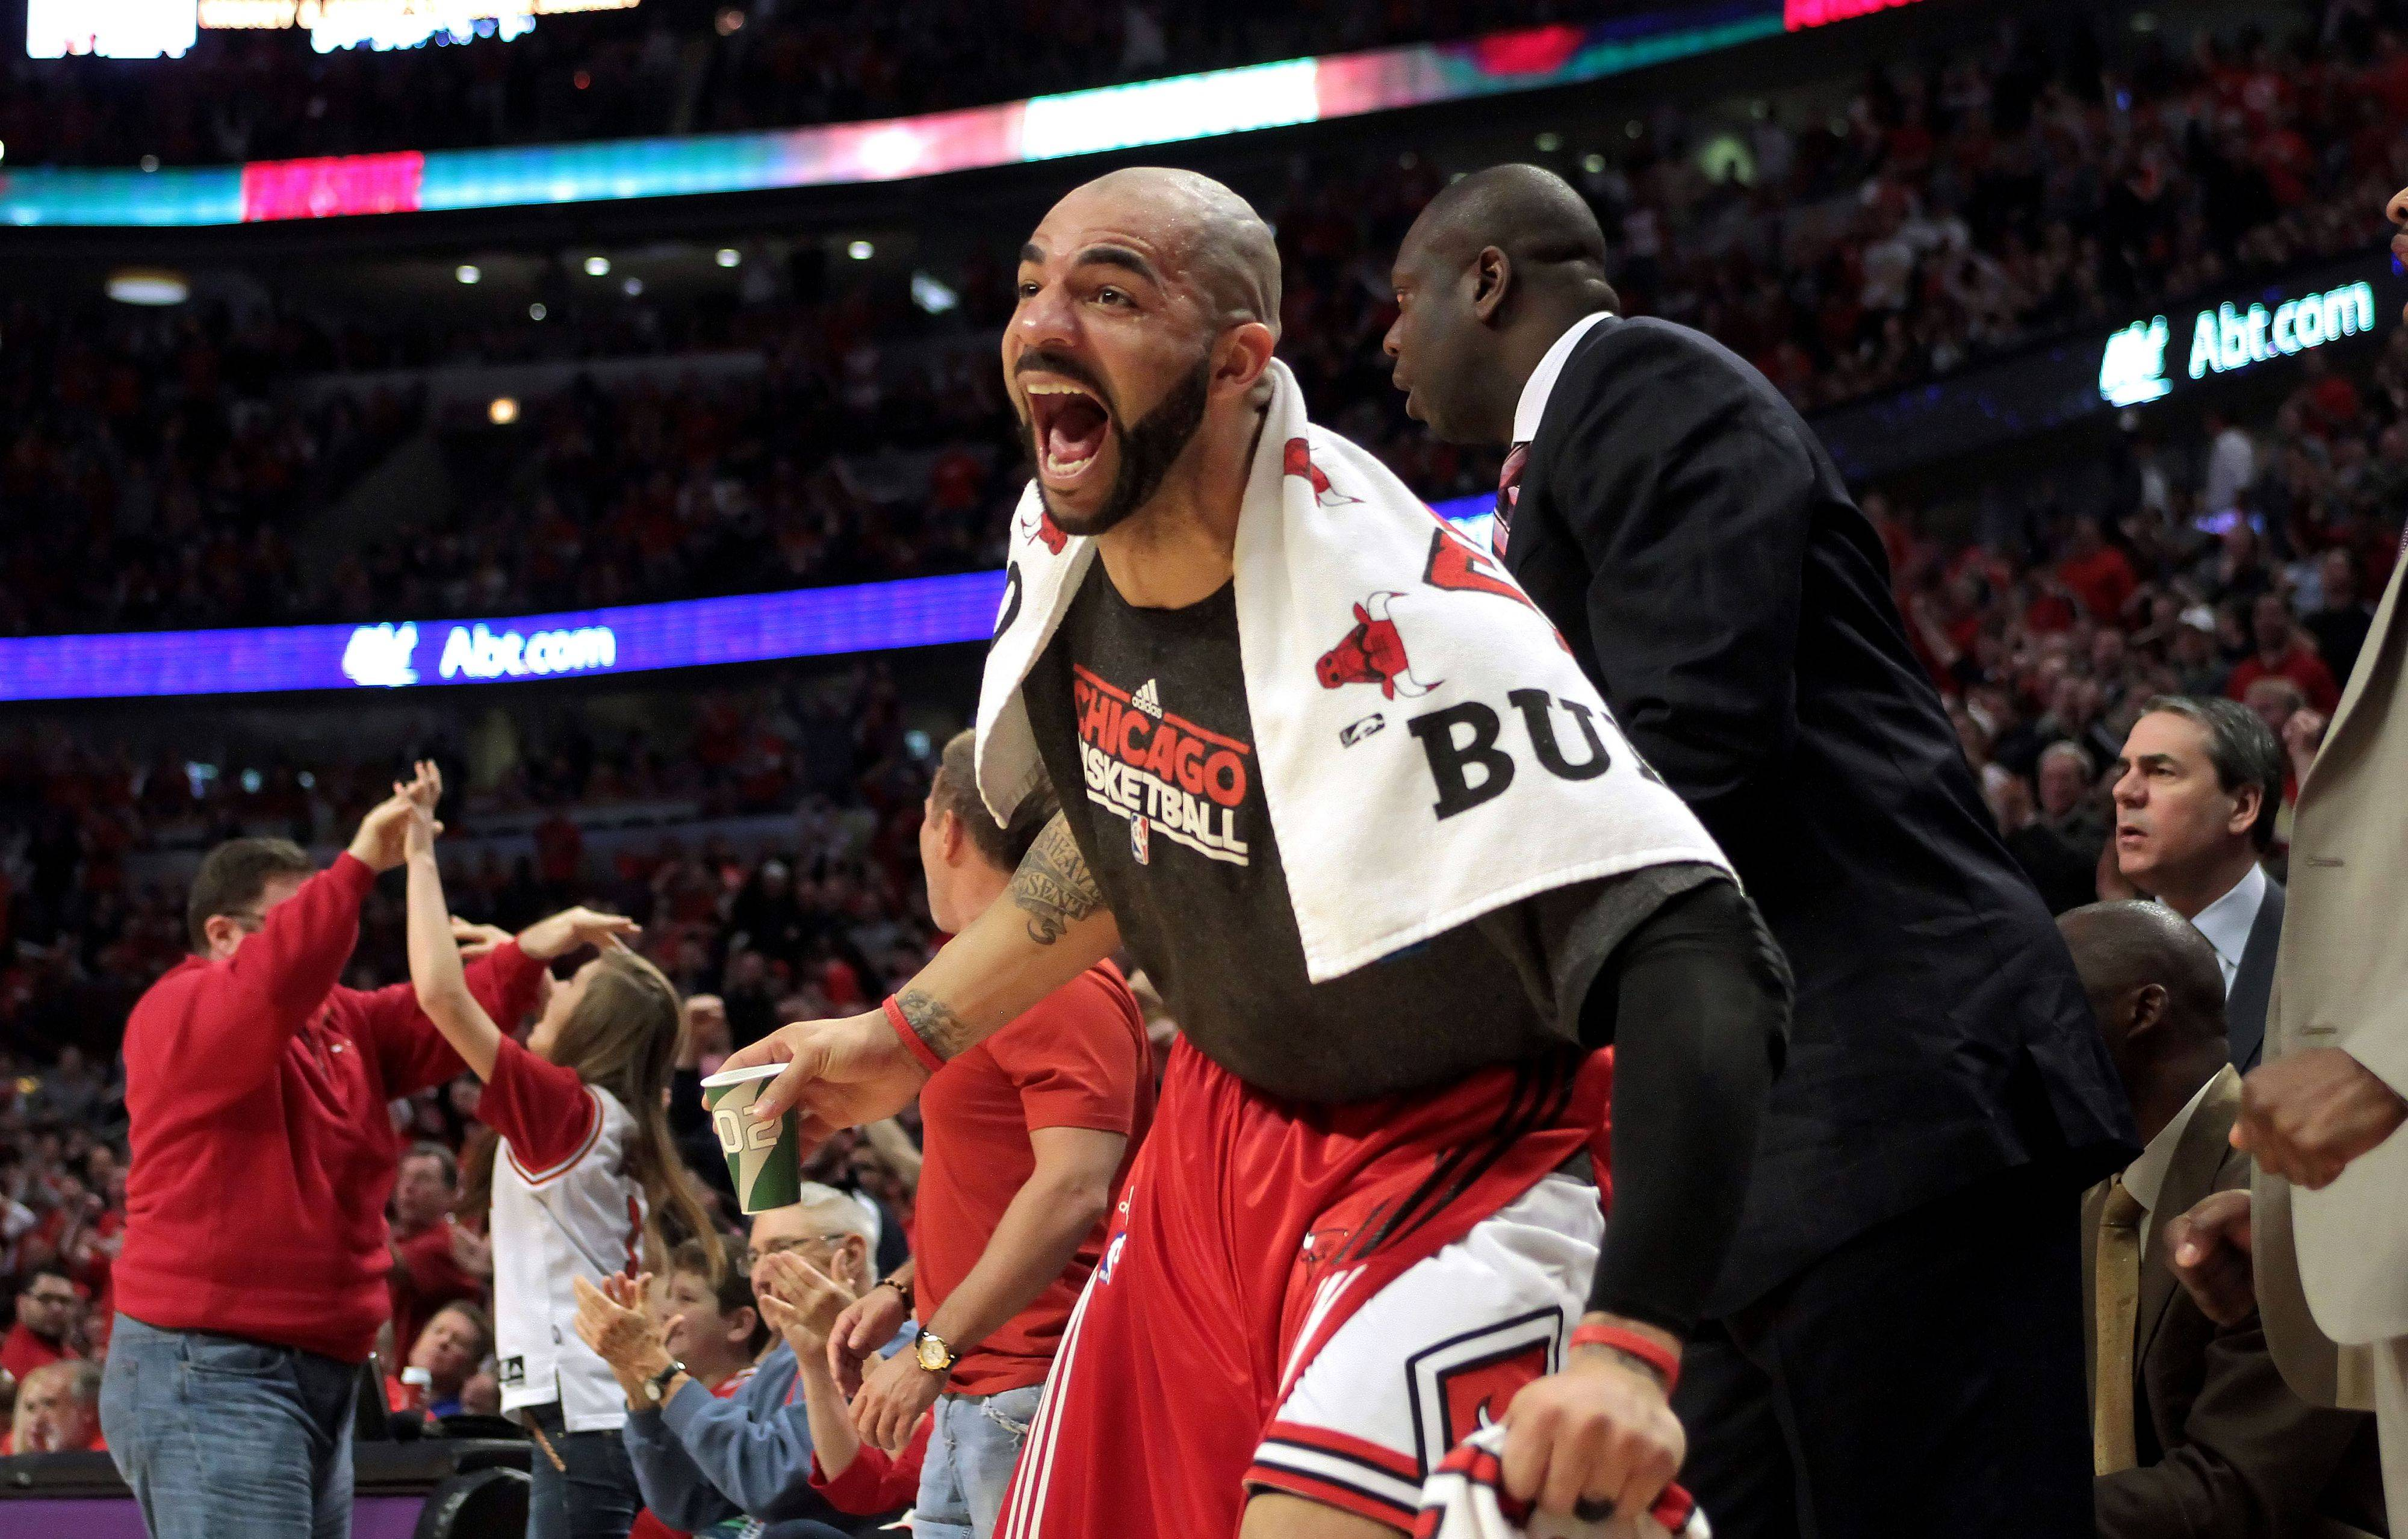 Chicago Bulls power forward Carlos Boozer cheers after a dunk by Taj Gibson during game one of the Eastern Conference finals Sunday night at the United Center.